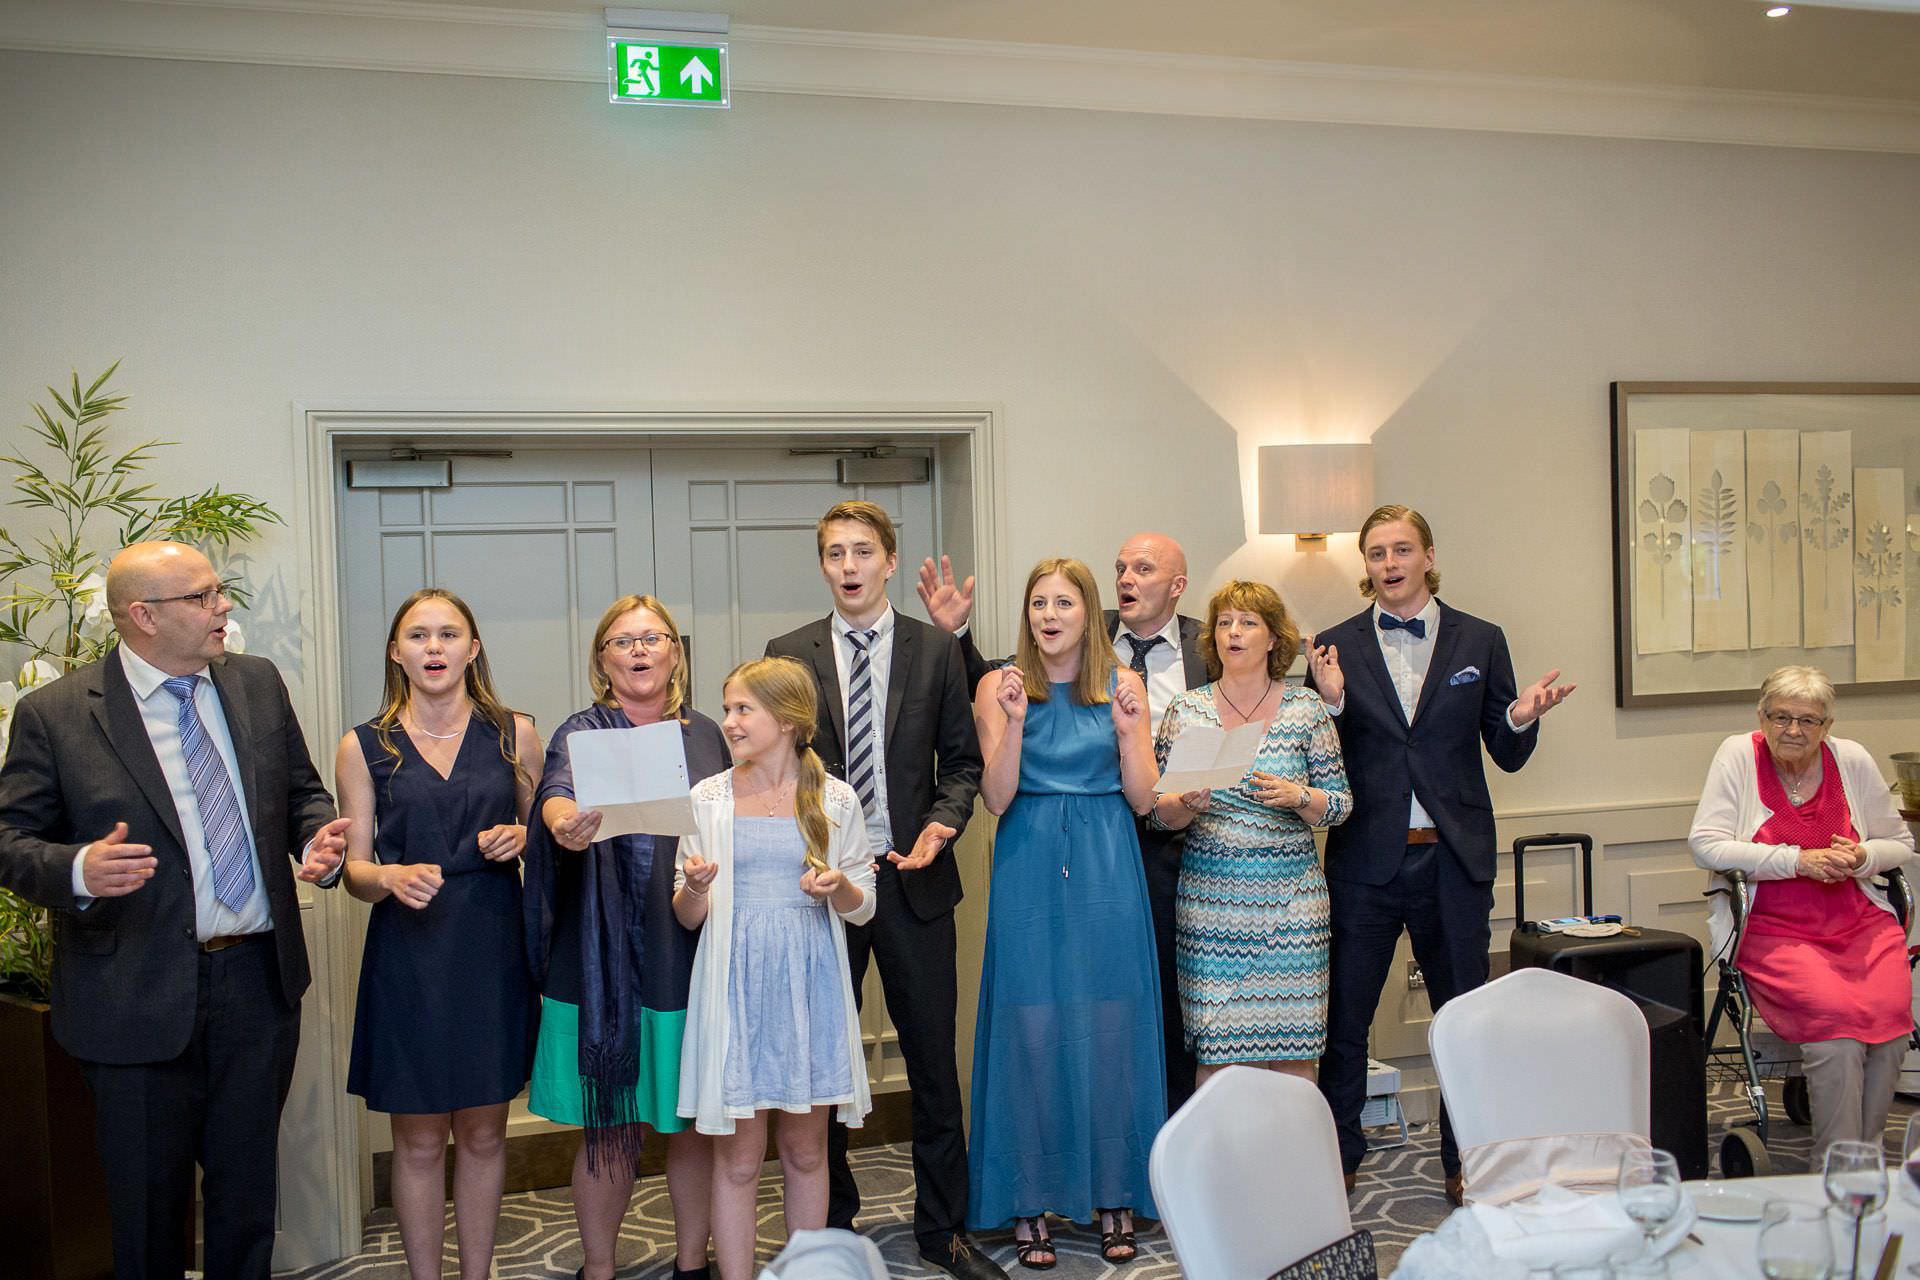 Wotton House wedding guests smiling